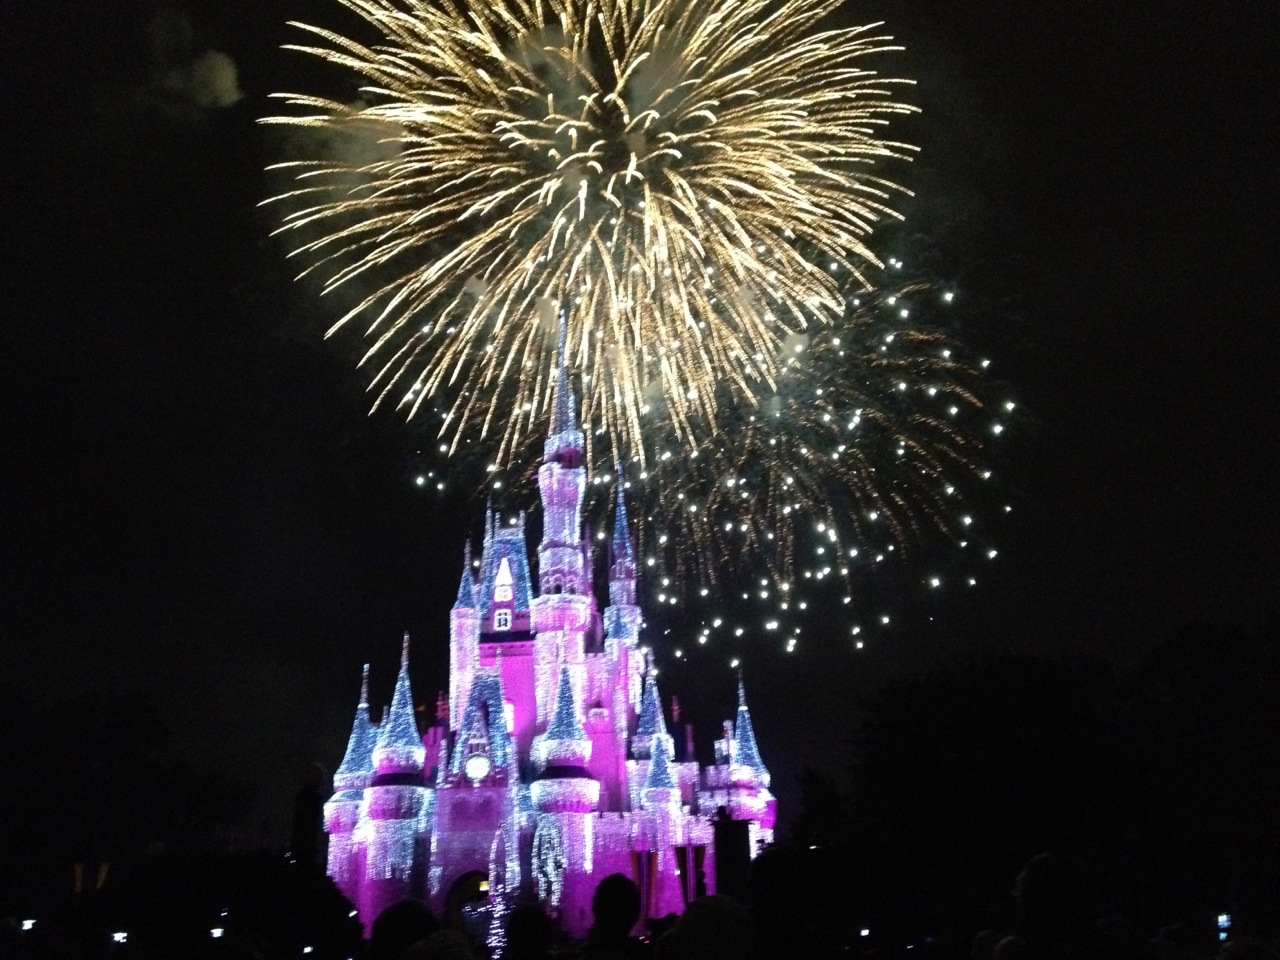 52 Weeks Of Disney Week 49 Magic Kingdom Holiday Lights And Fireworks Dec 8